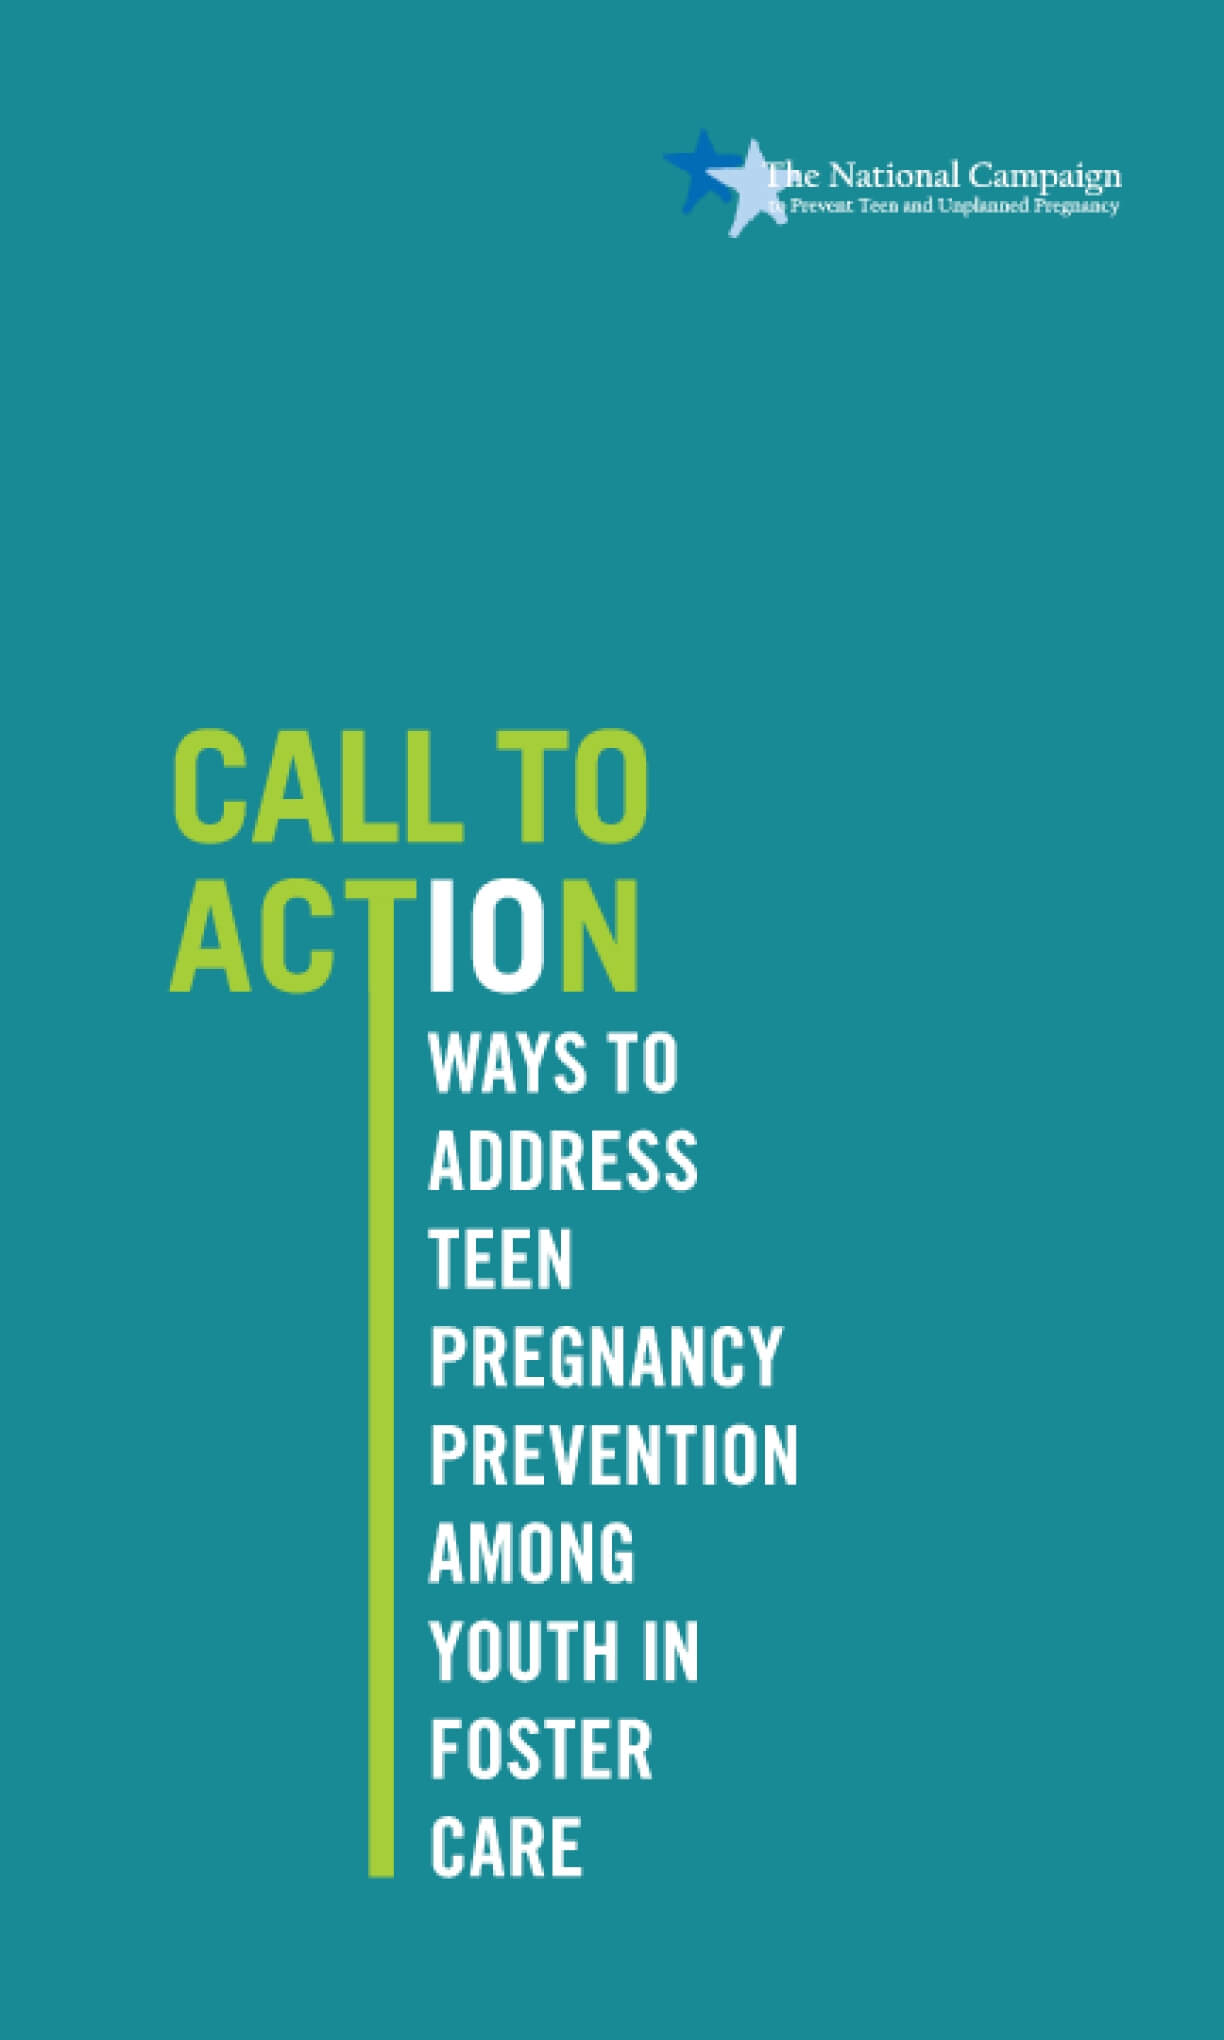 Call to Action: 10 Ways to Address Teen Pregnancy Prevention Among Youth in Foster Care